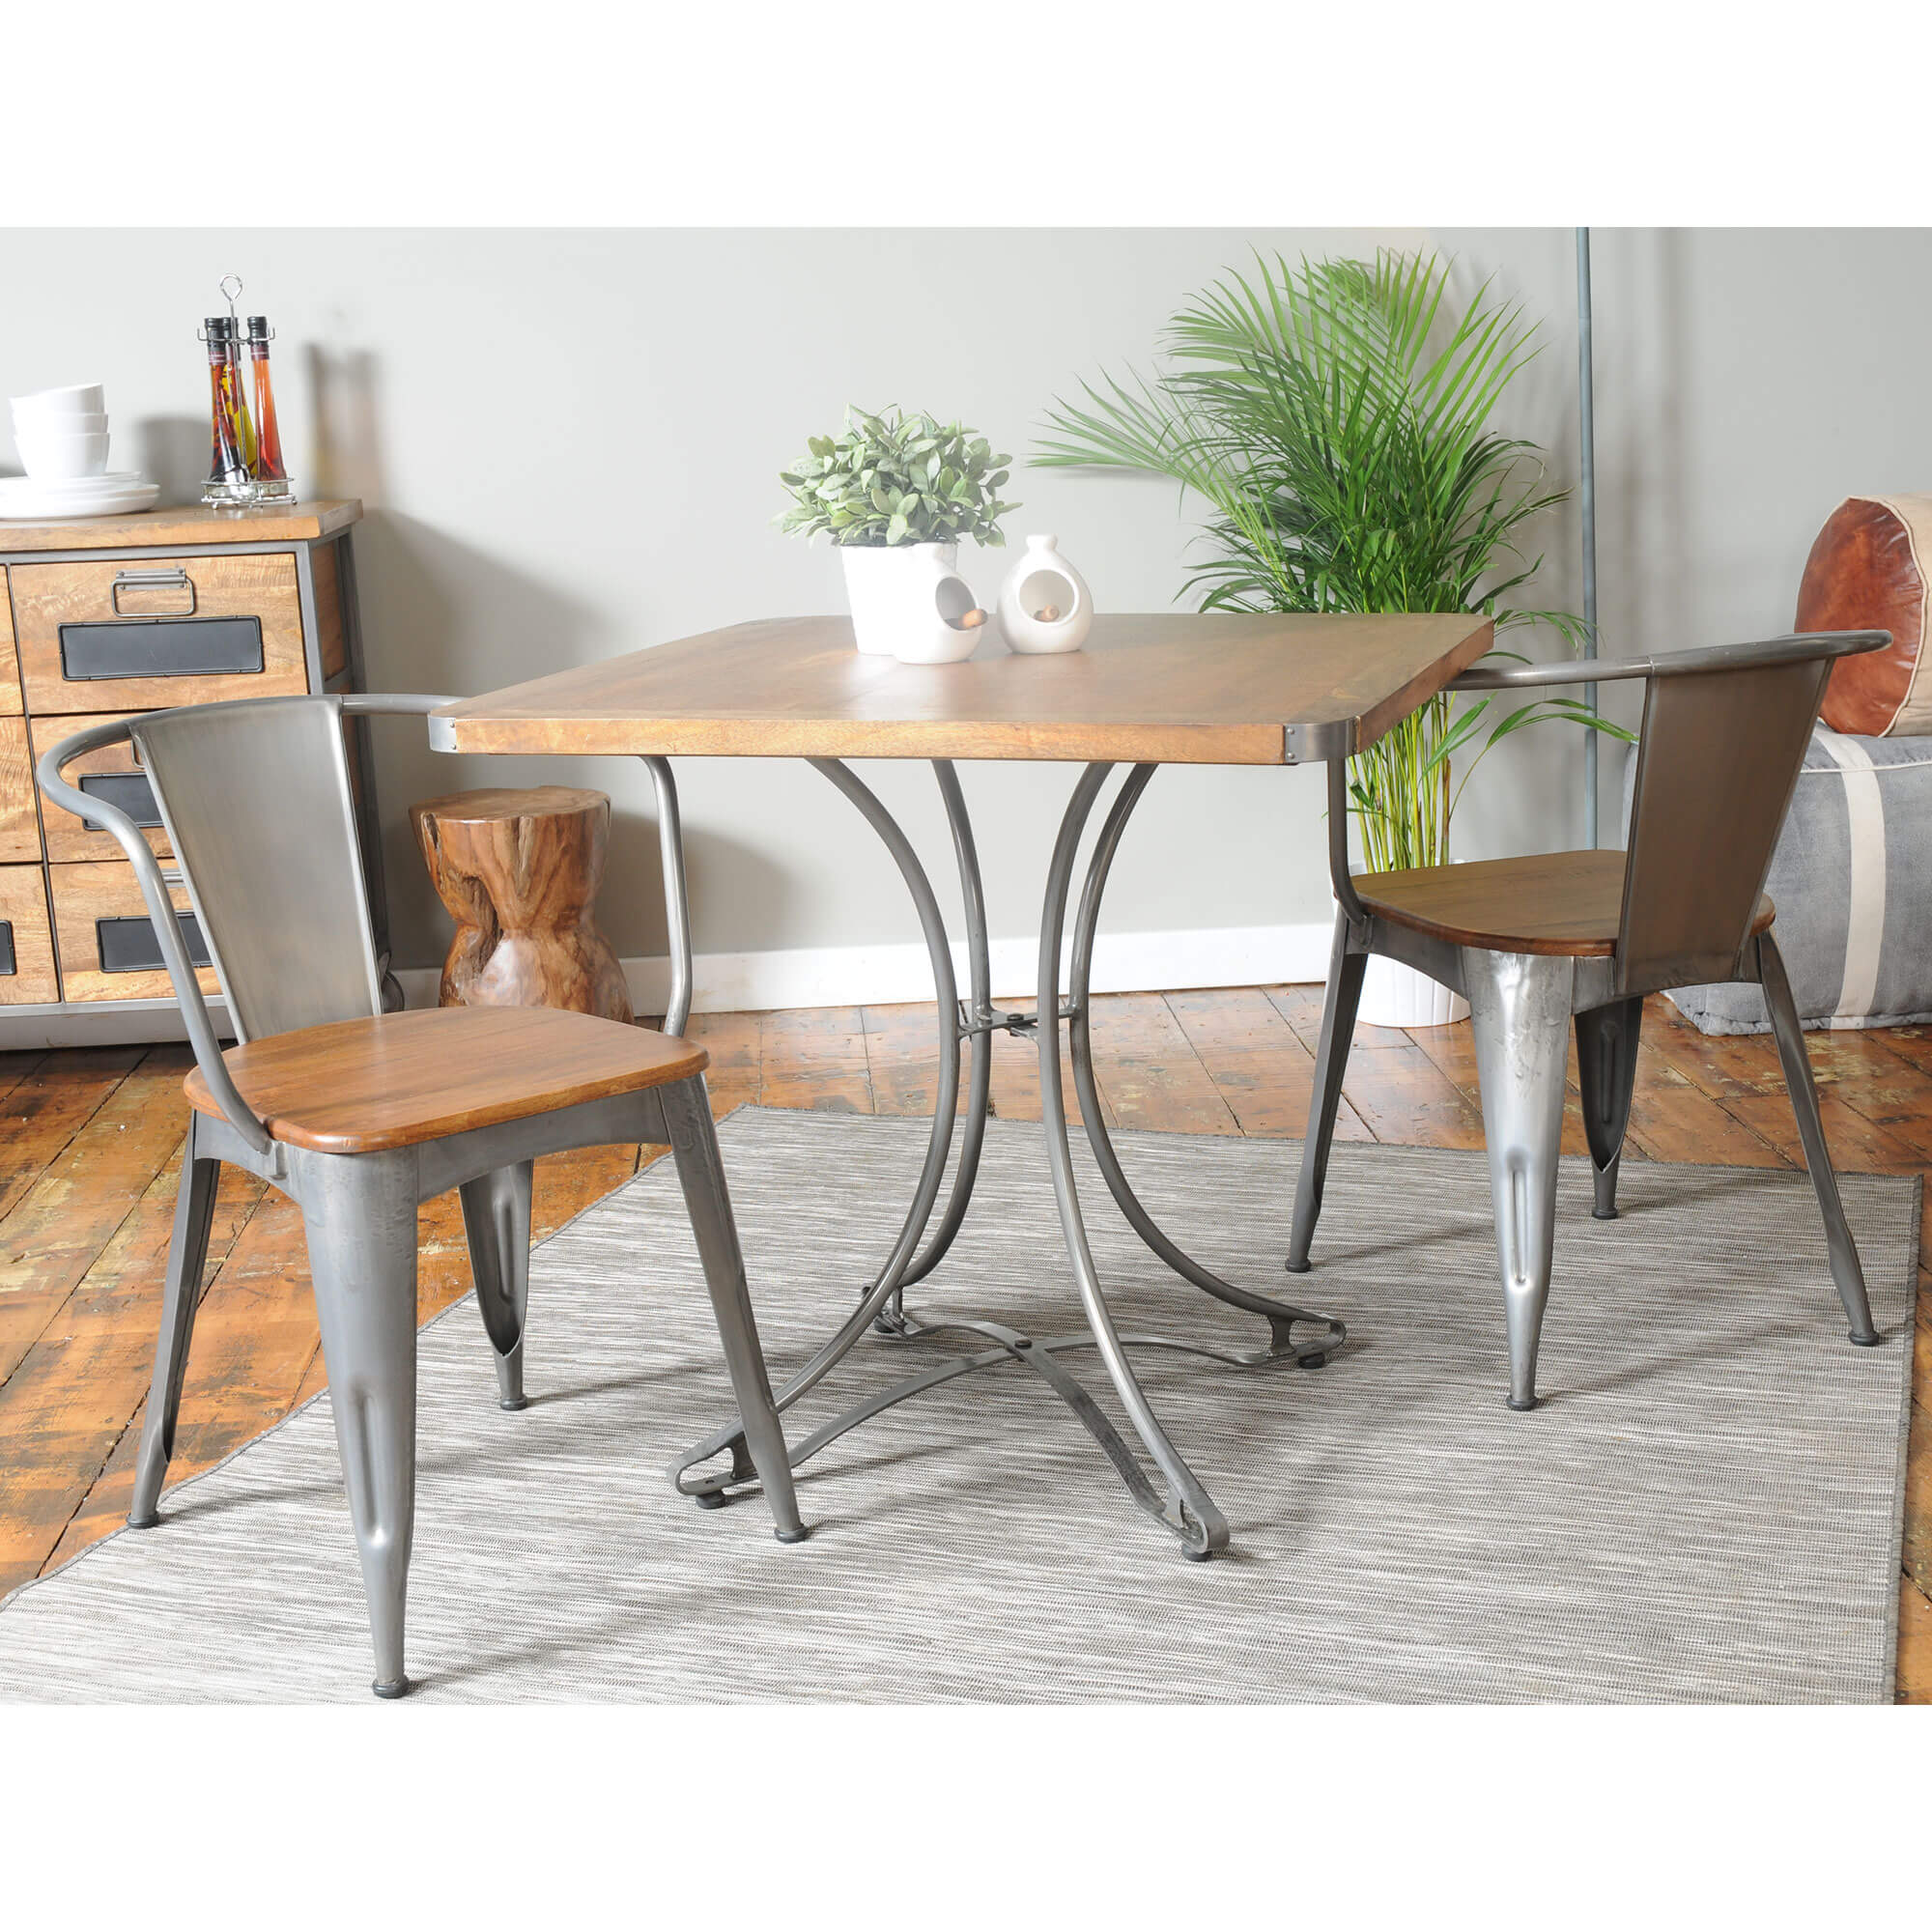 Urban Square Cafe Table x2 Chairs (80x80) | Furniture Supplies UK